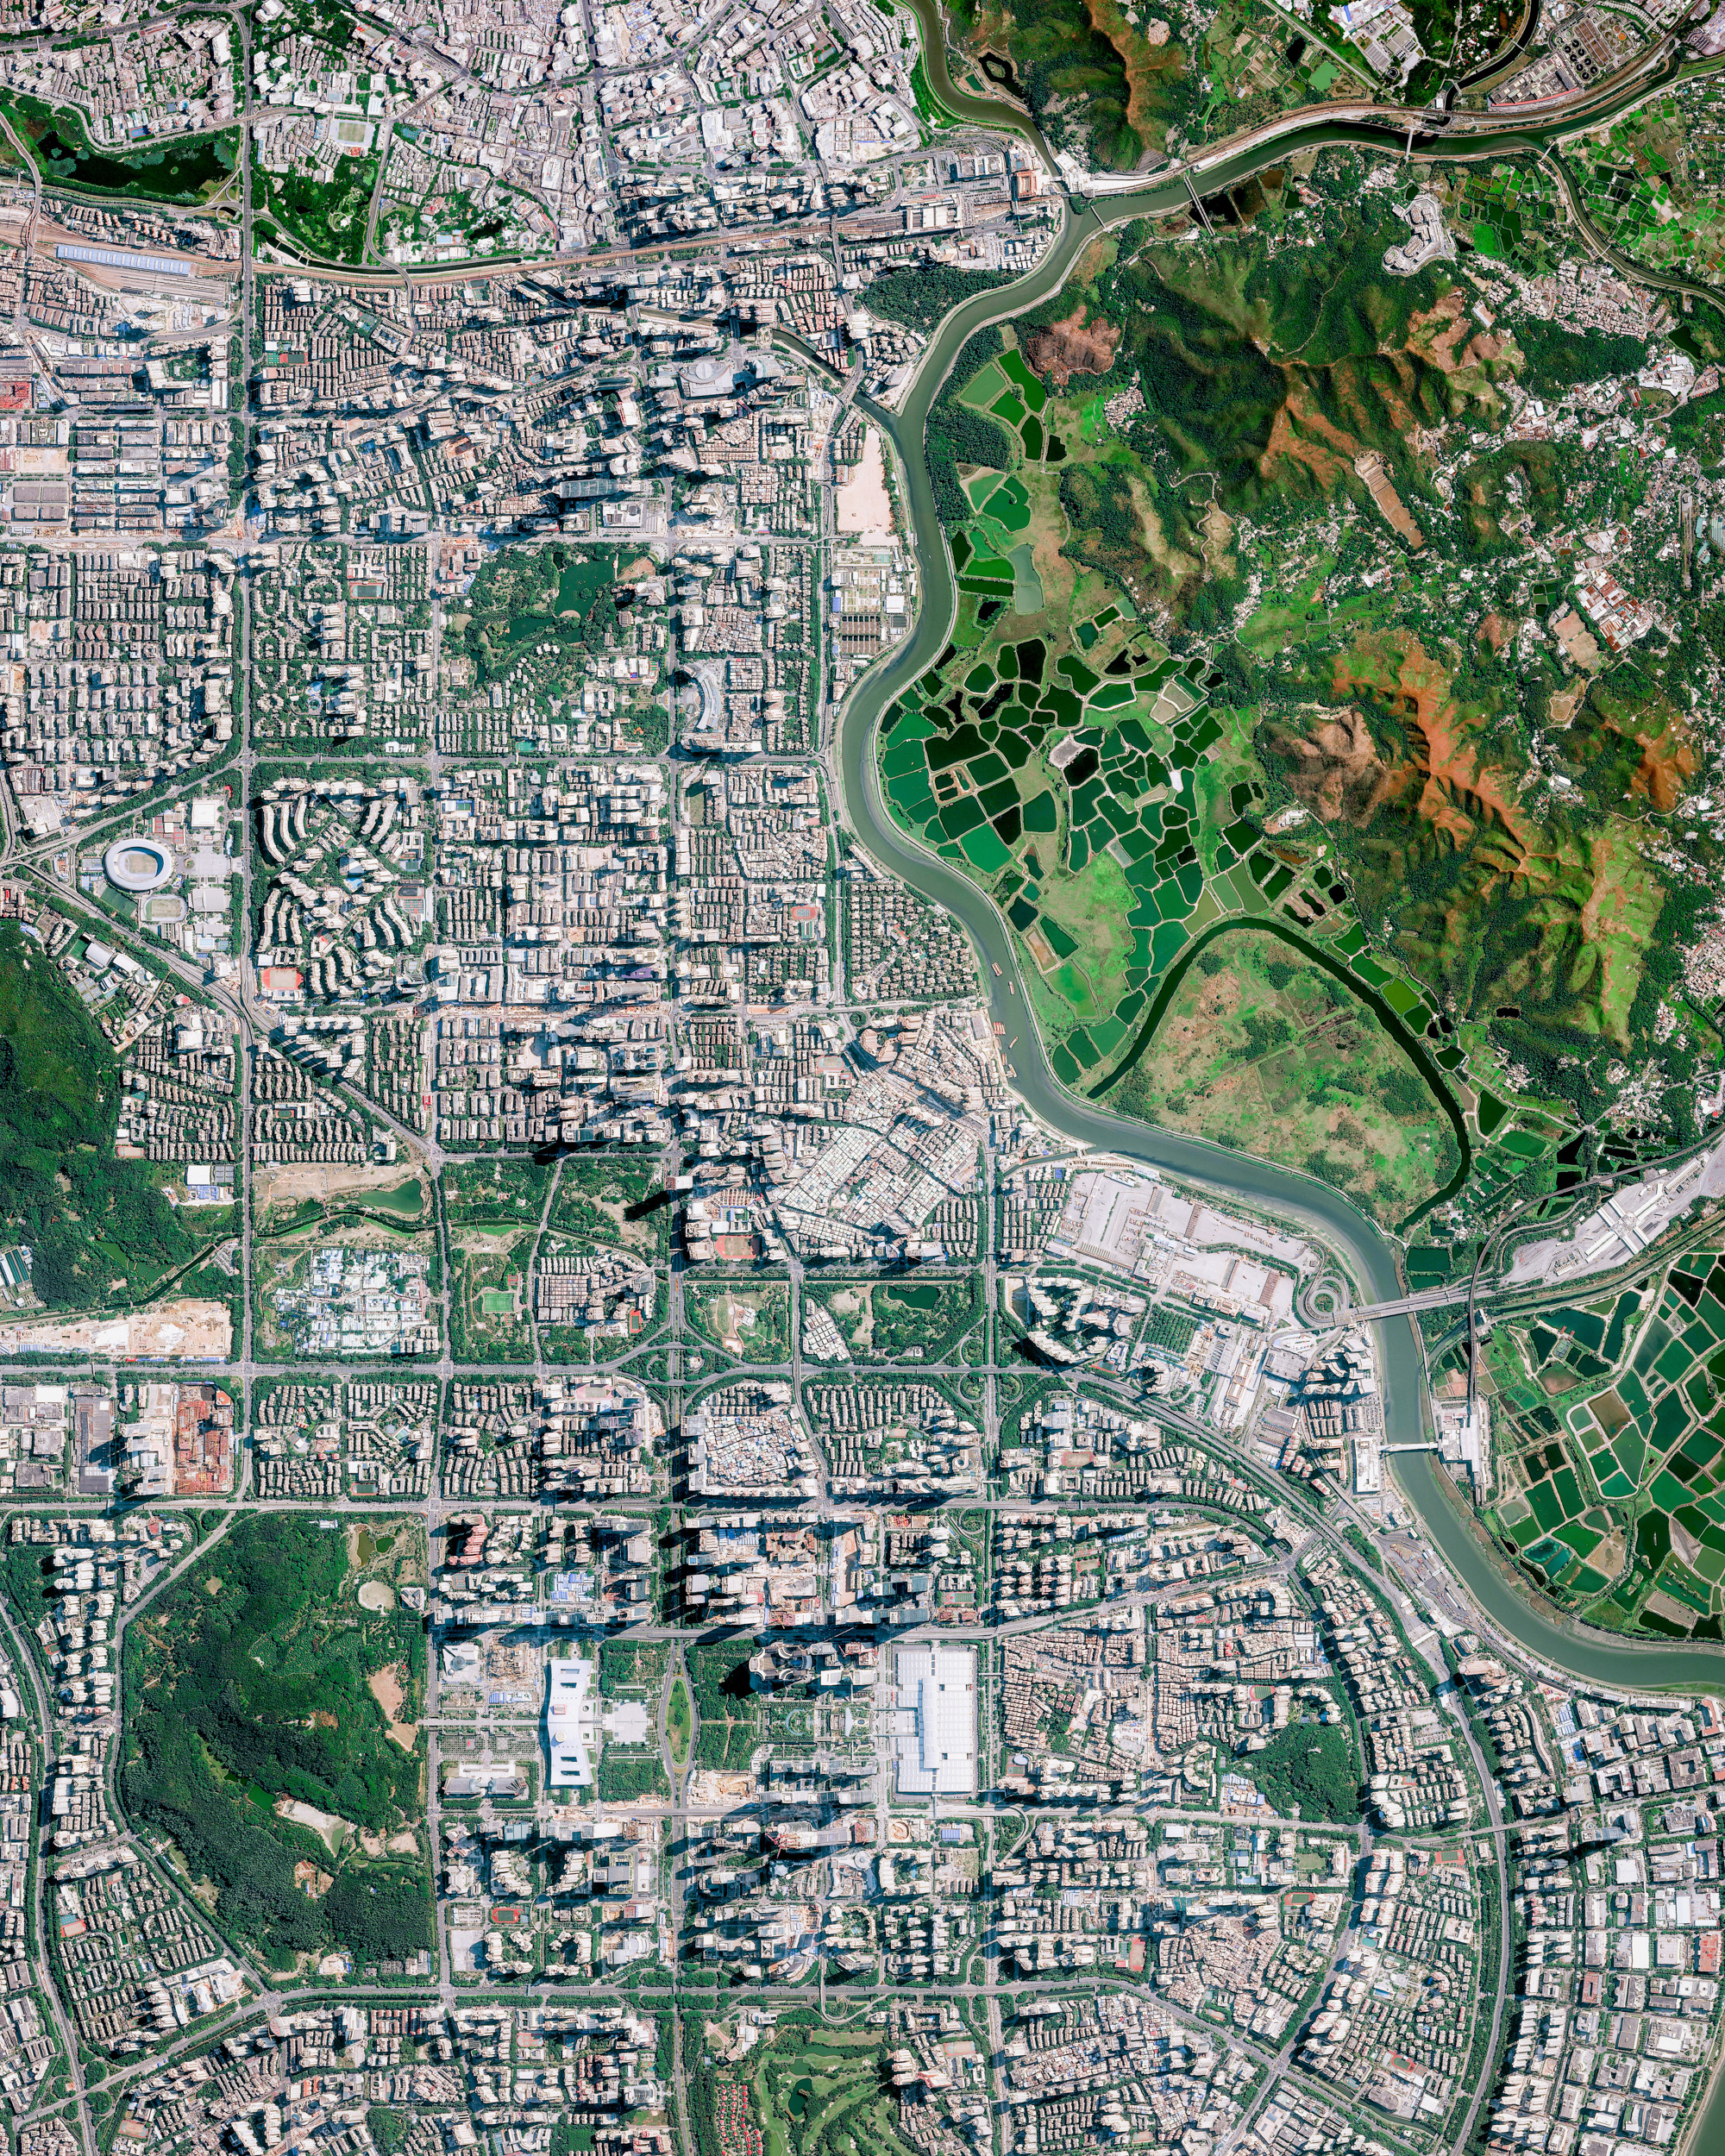 Shenzhen, China, was one of the fastest-growing cities in the world in the 1990s and 2000s and currently has a population of at least 12.5 million. Bordering Hong Kong to the south, Huizhou to the northeast, and Dongguan to the northwest, it is part of the Pearl River Delta megalopolis — one of the most densely urbanized regions in the world. Recently, along Shenzhen's border with Hong Kong, hundreds of Chinese security officers have gathered in a show of force as tensions rise between Hong Kong and mainland China.  22.550000°, 114.100000°  Source imagery: Maxar Technologies